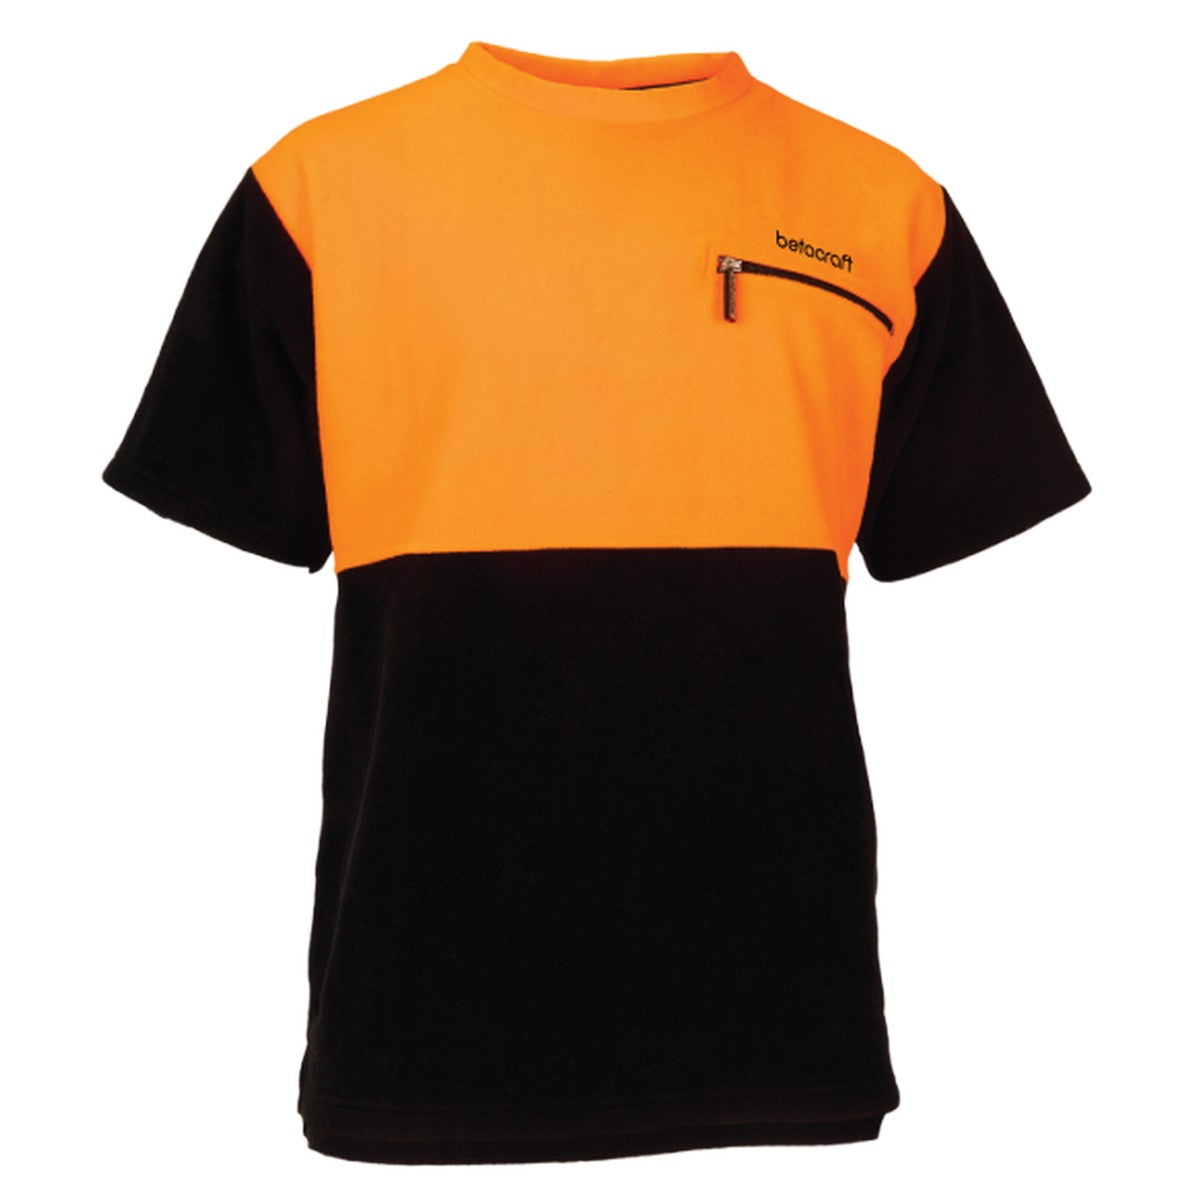 Image of Betacraft Hi-Viz Fleece Tee